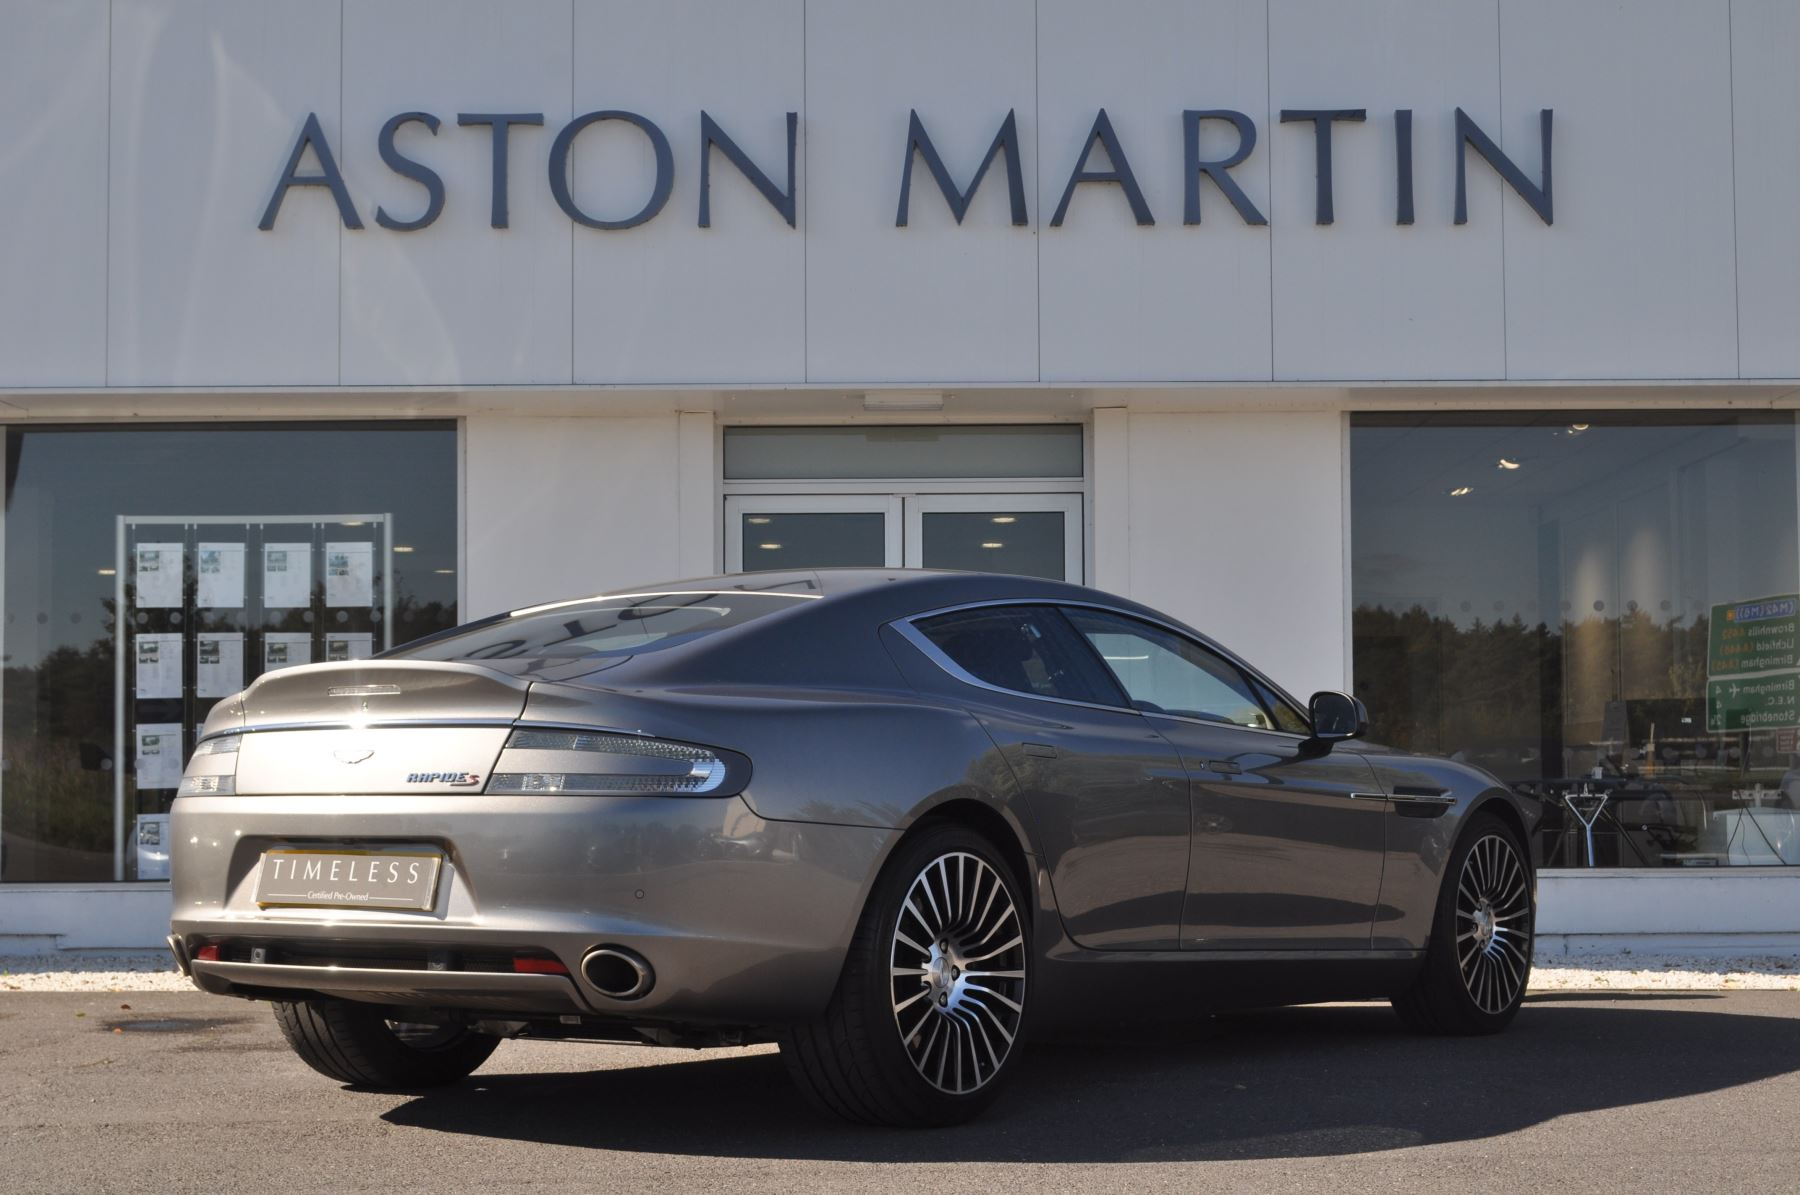 Aston Martin Rapide S V Dr Touchtronic Automatic Door - Aston martin rapide s